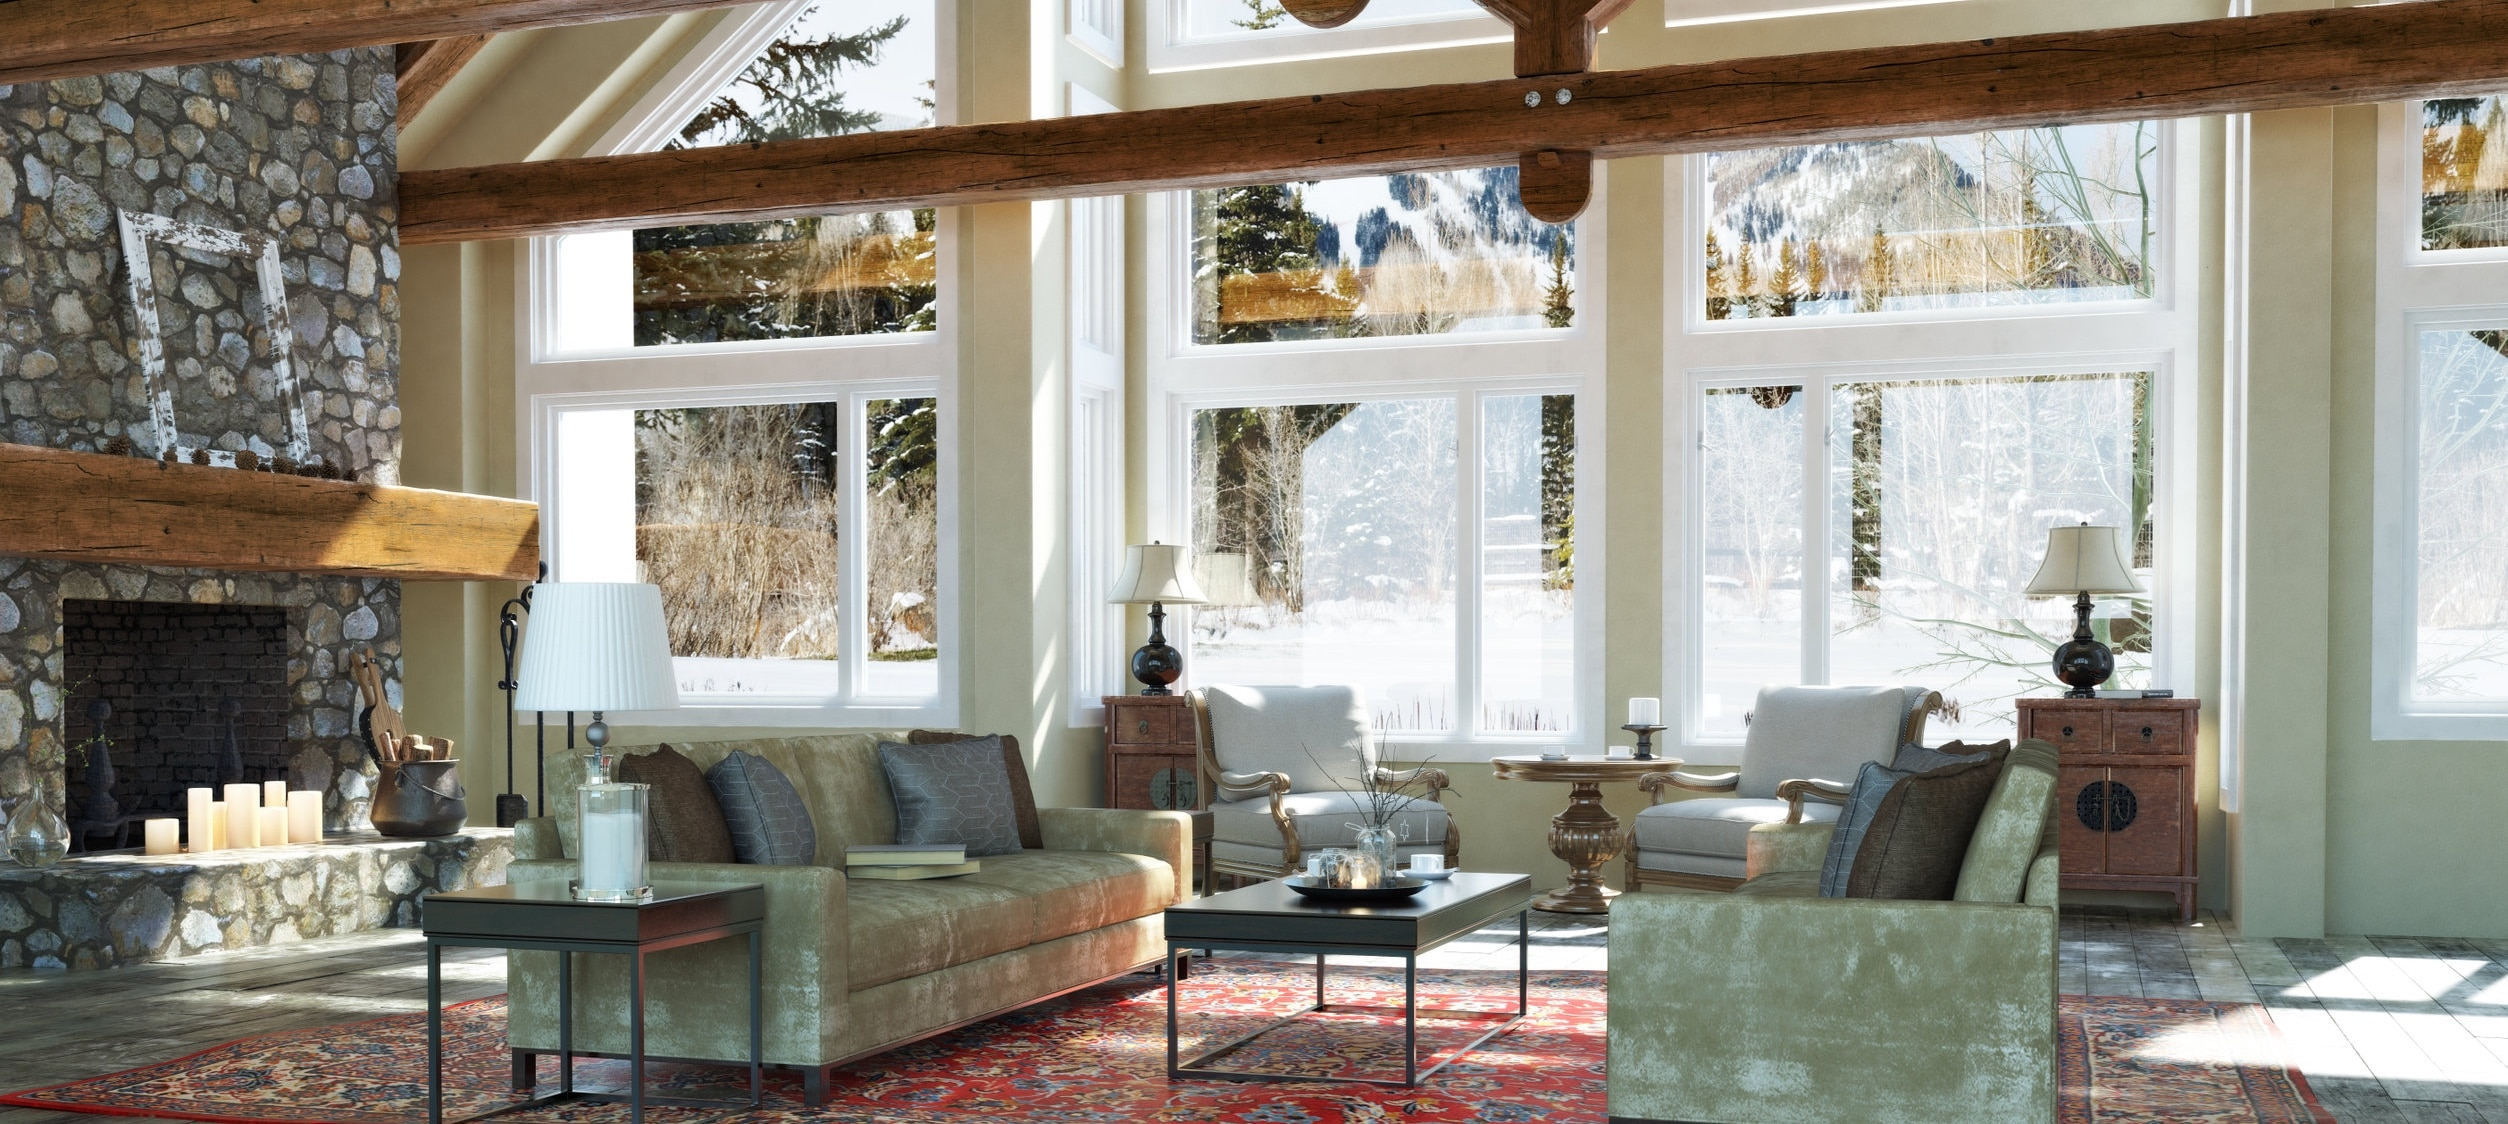 Interior living room of a mountain home